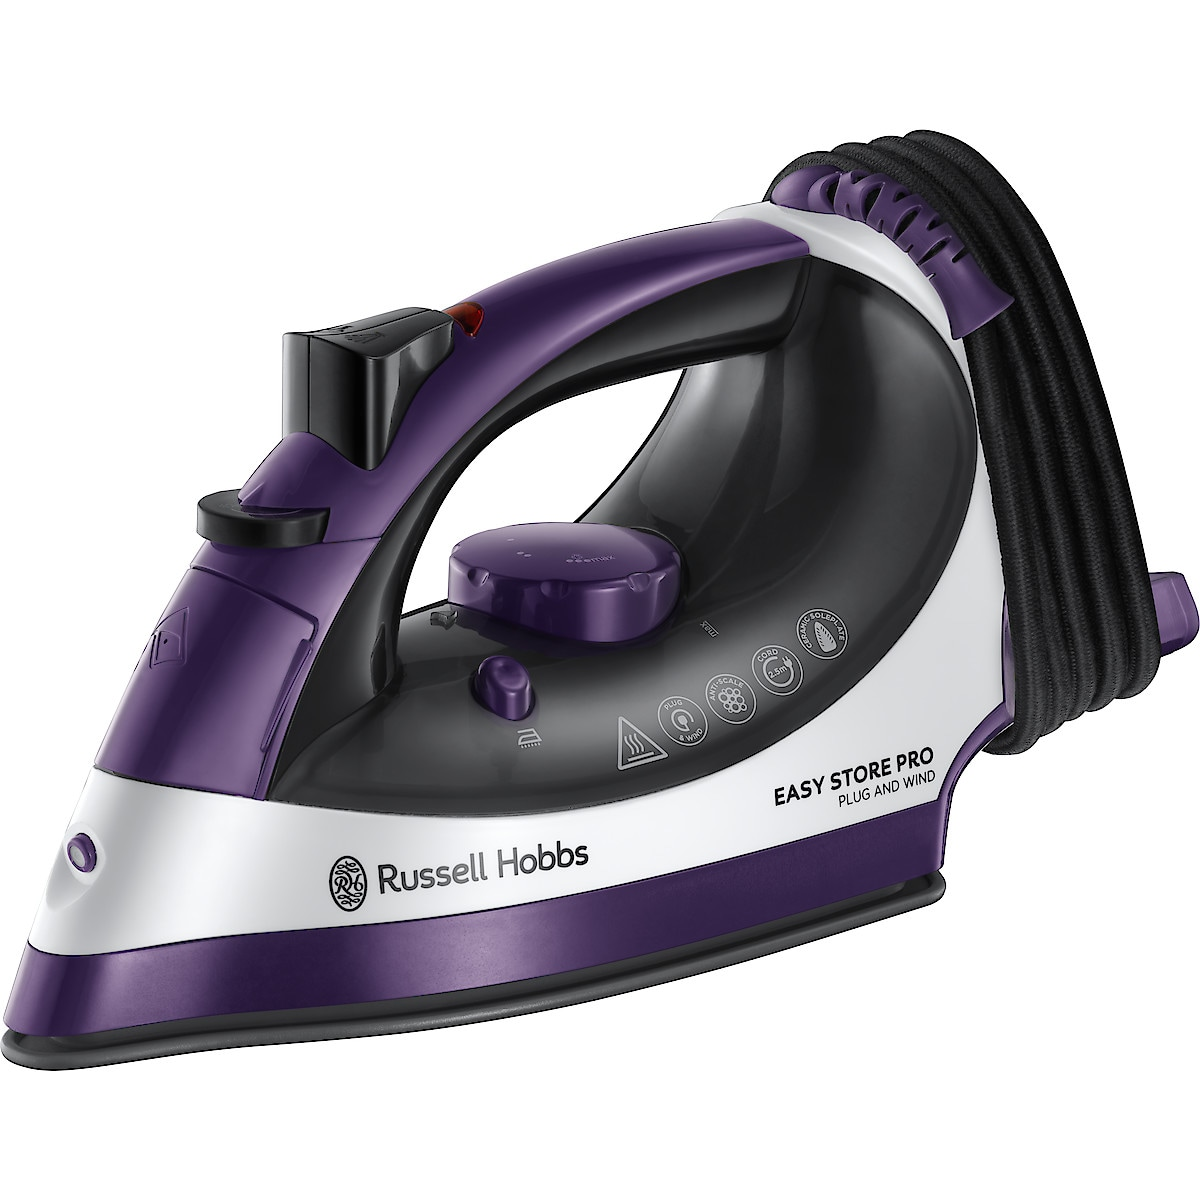 Russell Hobbs Easy Store PRO 23780 Iron